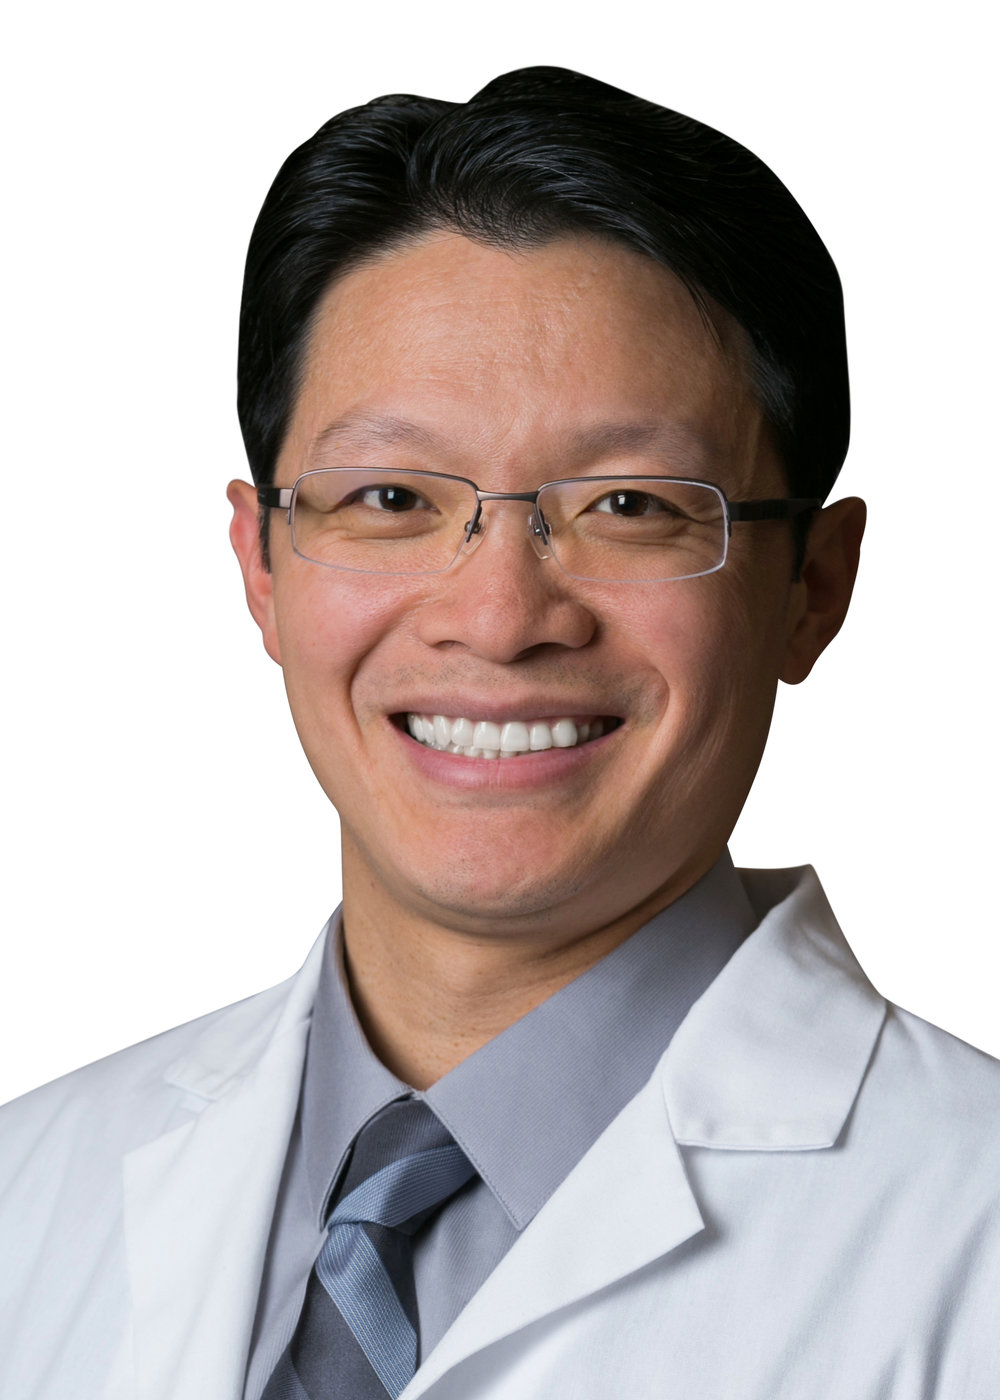 Thomas Yu, M.D. - CHIEF MEDICAL OFFICER